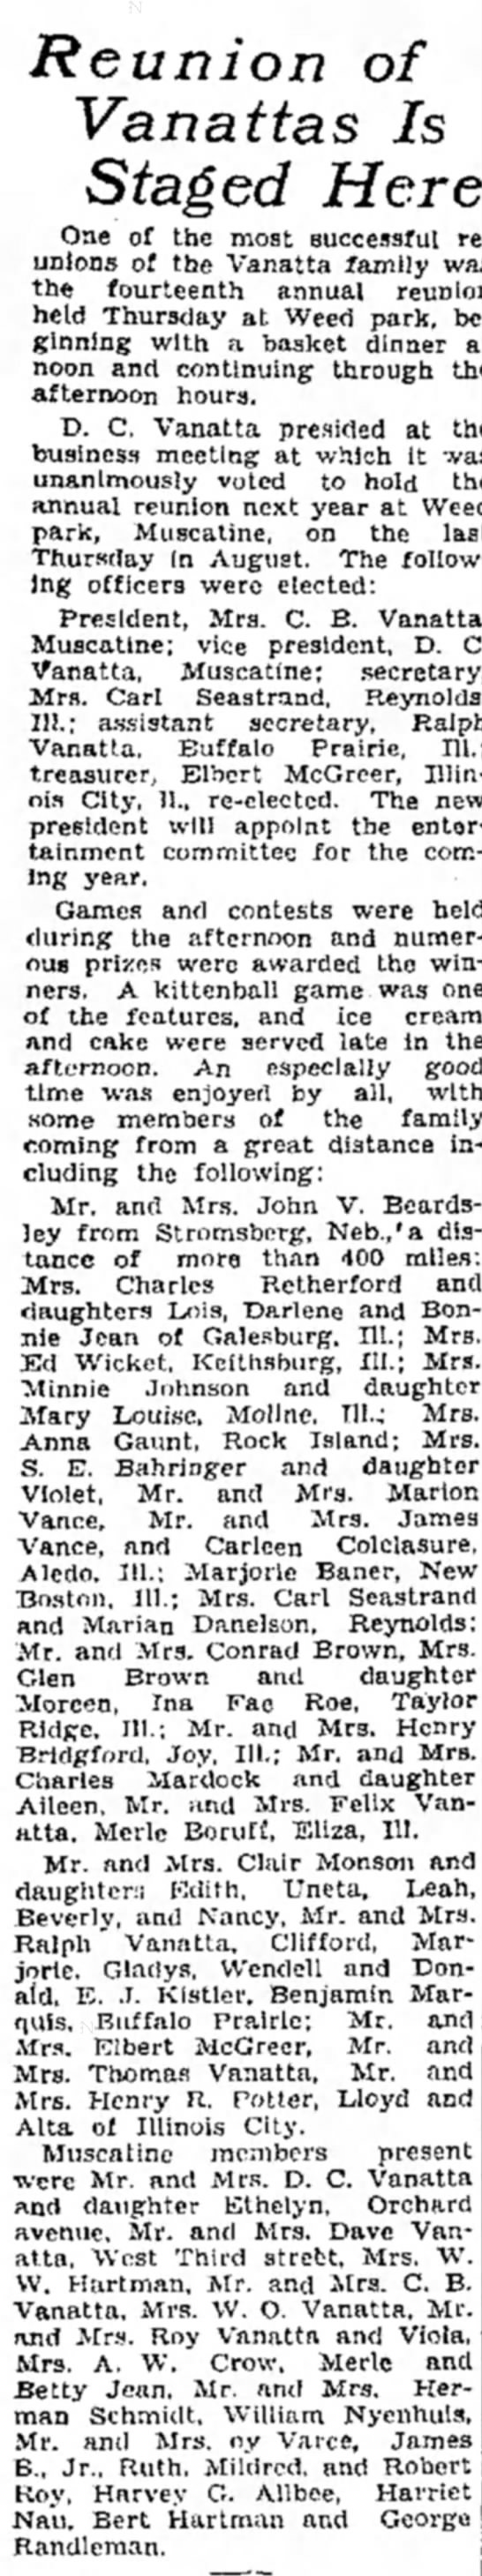 The Muscatine Journal and News-Tribune (Muscatine, Iowa)  Friday, August 28, 1931 - Page 4 - Reunion of Vanattas Is Staged Here One of the...